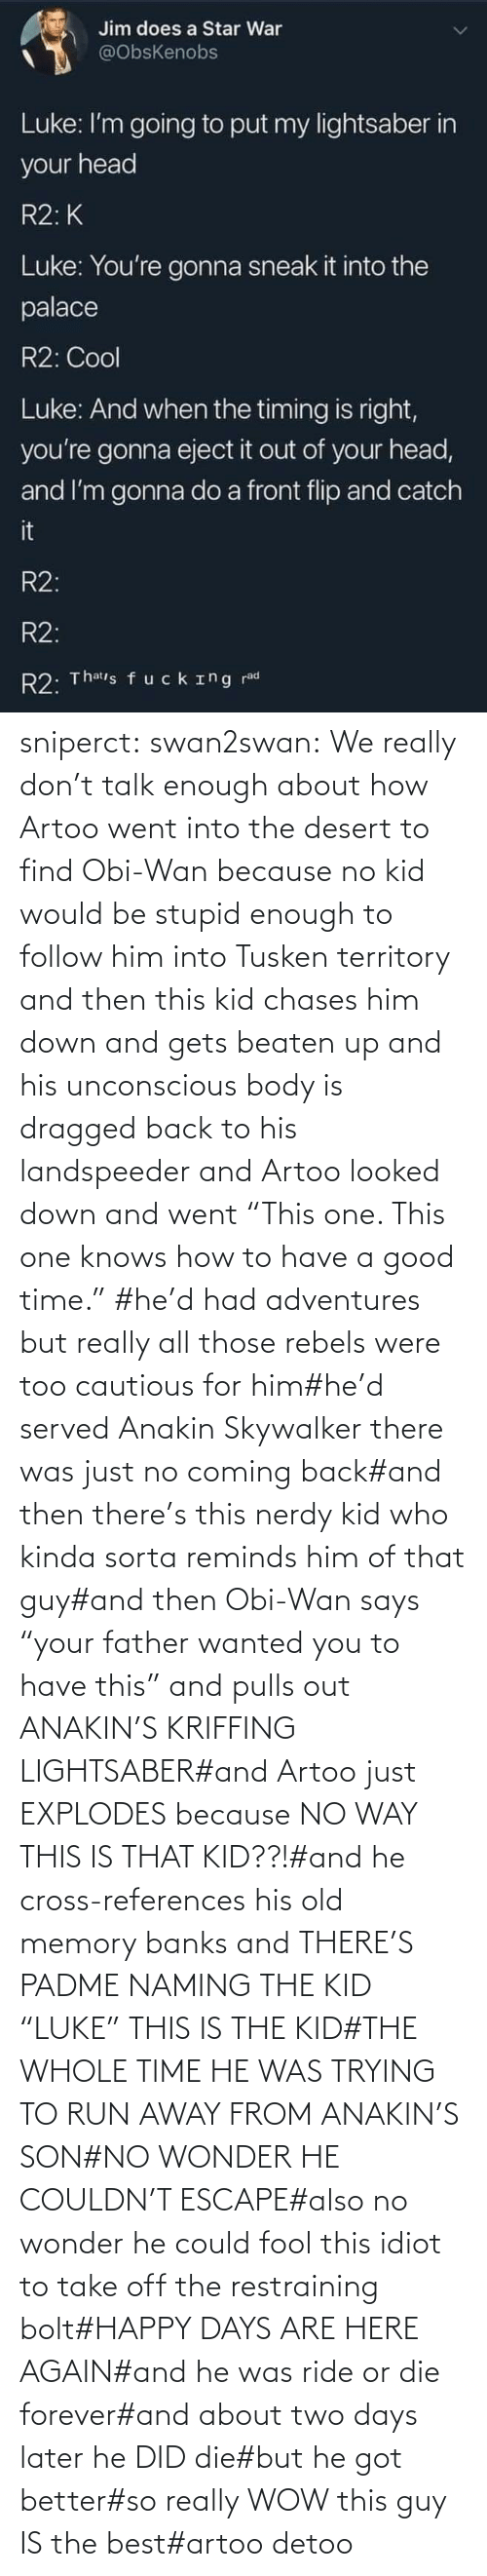 "Knows: sniperct:  swan2swan: We really don't talk enough about how Artoo went into the desert to find Obi-Wan because no kid would be stupid enough to follow him into Tusken territory and then this kid chases him down and gets beaten up and his unconscious body is dragged back to his landspeeder and Artoo looked down and went ""This one. This one knows how to have a good time.""  #he'd had adventures but really all those rebels were too cautious for him#he'd served Anakin Skywalker there was just no coming back#and then there's this nerdy kid who kinda sorta reminds him of that guy#and then Obi-Wan says ""your father wanted you to have this"" and pulls out ANAKIN'S KRIFFING LIGHTSABER#and Artoo just EXPLODES because NO WAY THIS IS THAT KID??!#and he cross-references his old memory banks and THERE'S PADME NAMING THE KID ""LUKE"" THIS IS THE KID#THE WHOLE TIME HE WAS TRYING TO RUN AWAY FROM ANAKIN'S SON#NO WONDER HE COULDN'T ESCAPE#also no wonder he could fool this idiot to take off the restraining bolt#HAPPY DAYS ARE HERE AGAIN#and he was ride or die forever#and about two days later he DID die#but he got better#so really WOW this guy IS the best#artoo detoo"